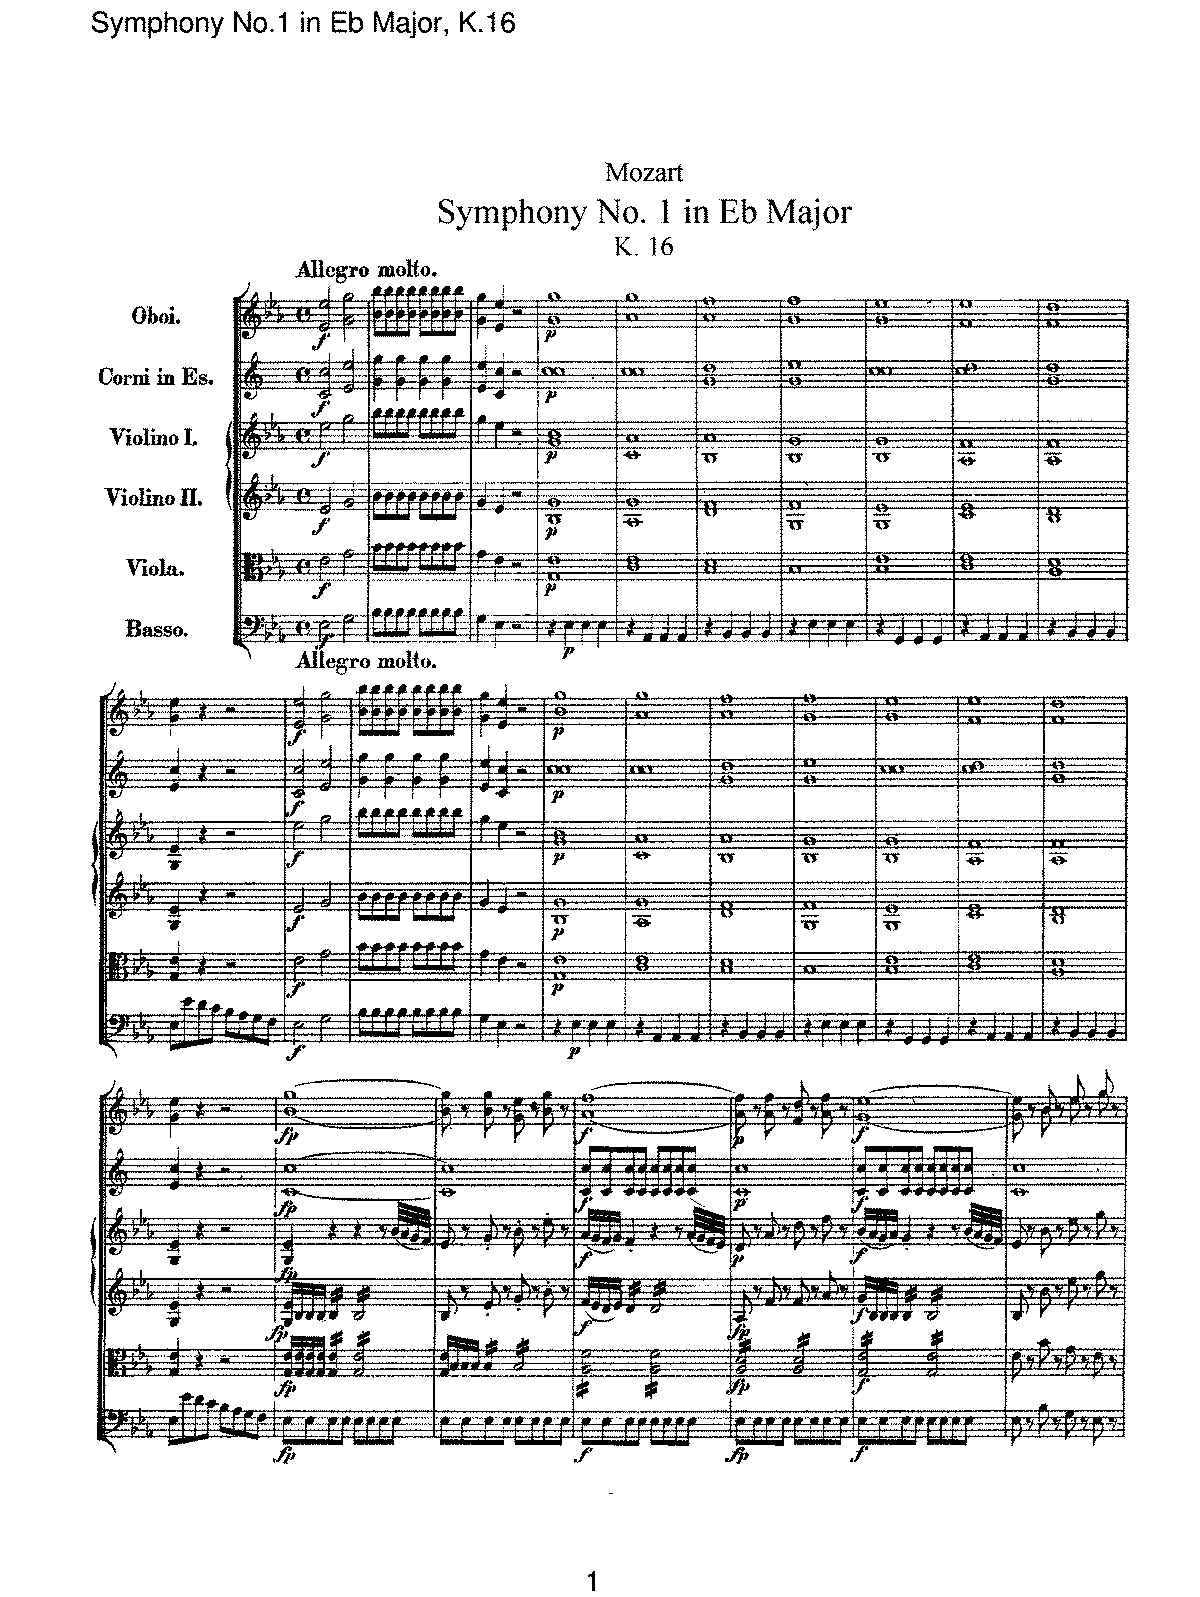 Mozart - Symphony No 01 in Eb Major, K16.pdf